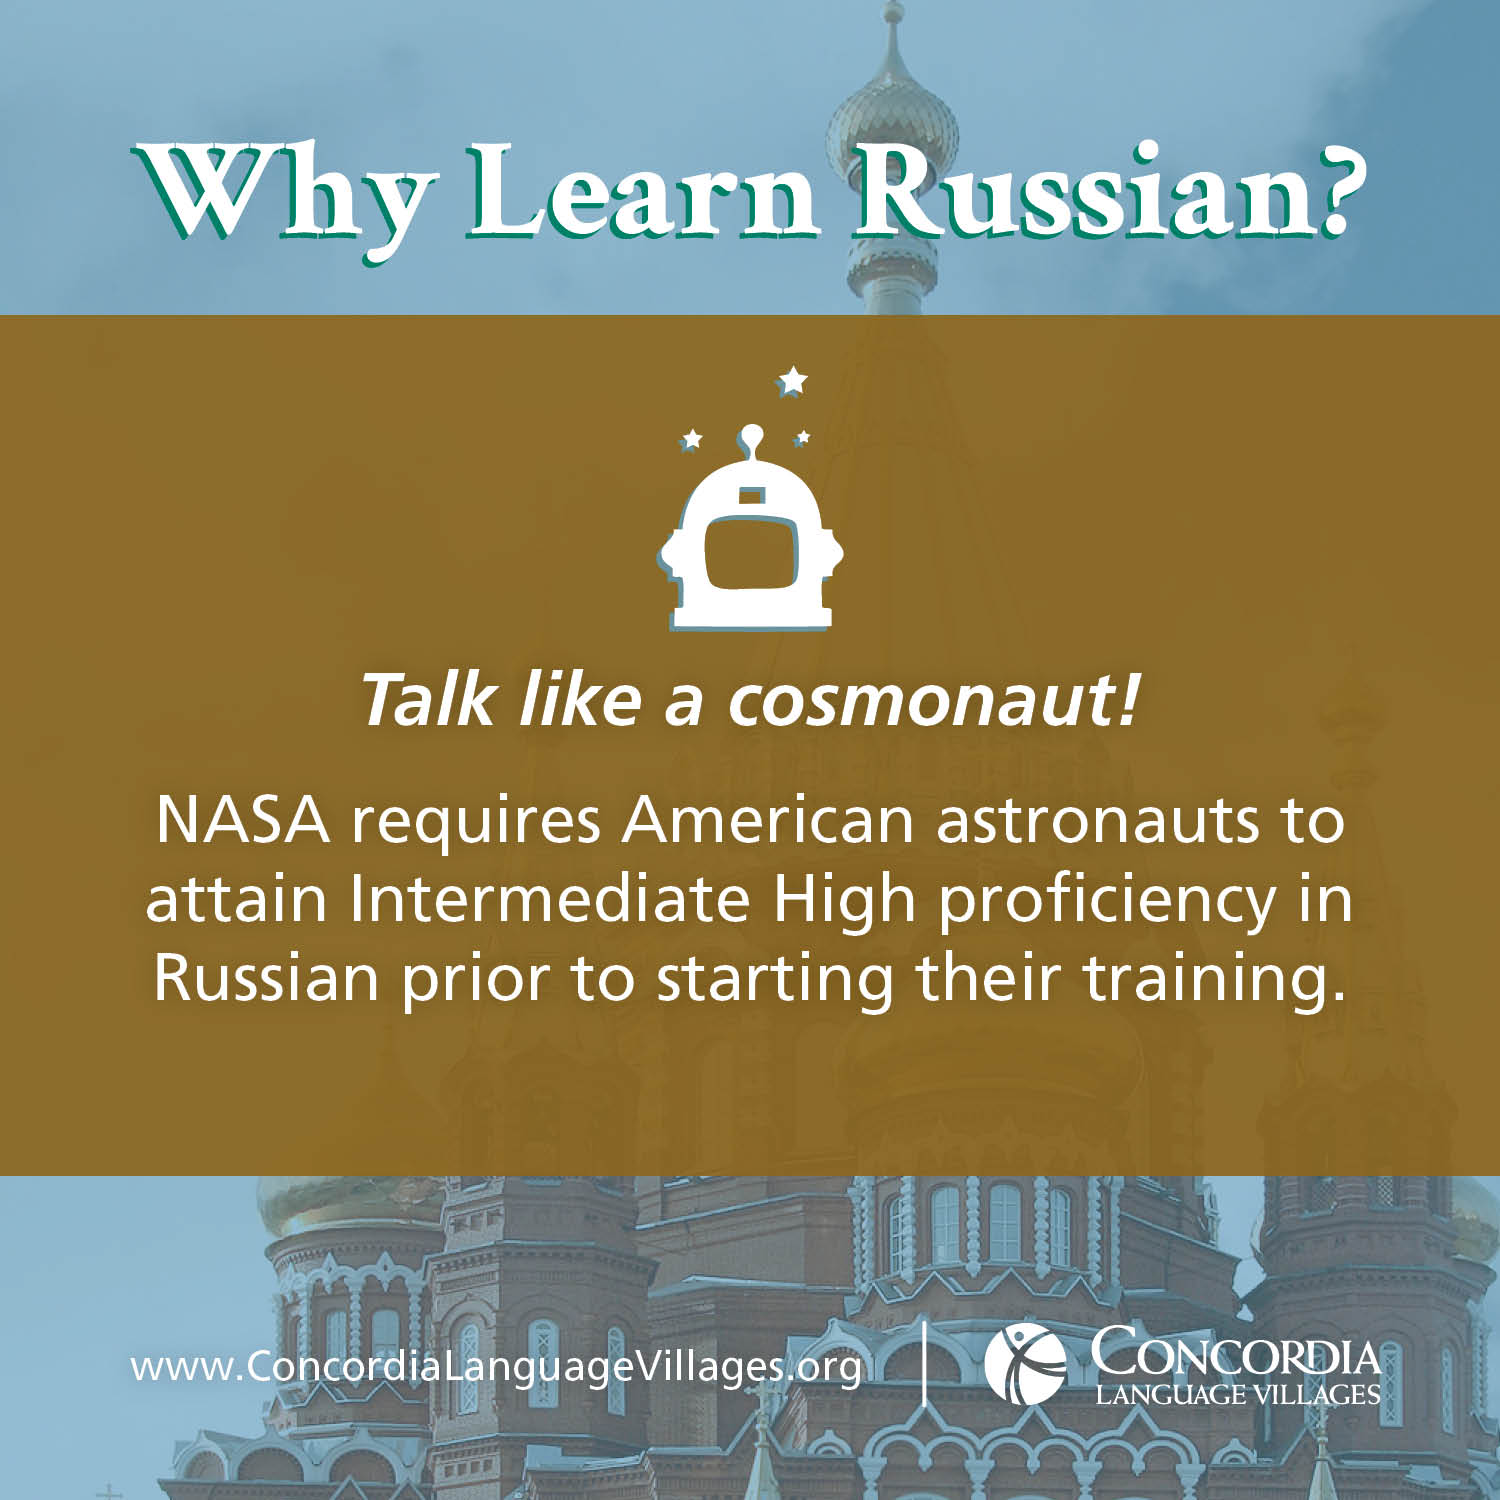 Why Learn Russian? Talk like a cosmonaut! NASA requires American astronauts to attain Intermediate High proficiency in Russian prior to starting their training.